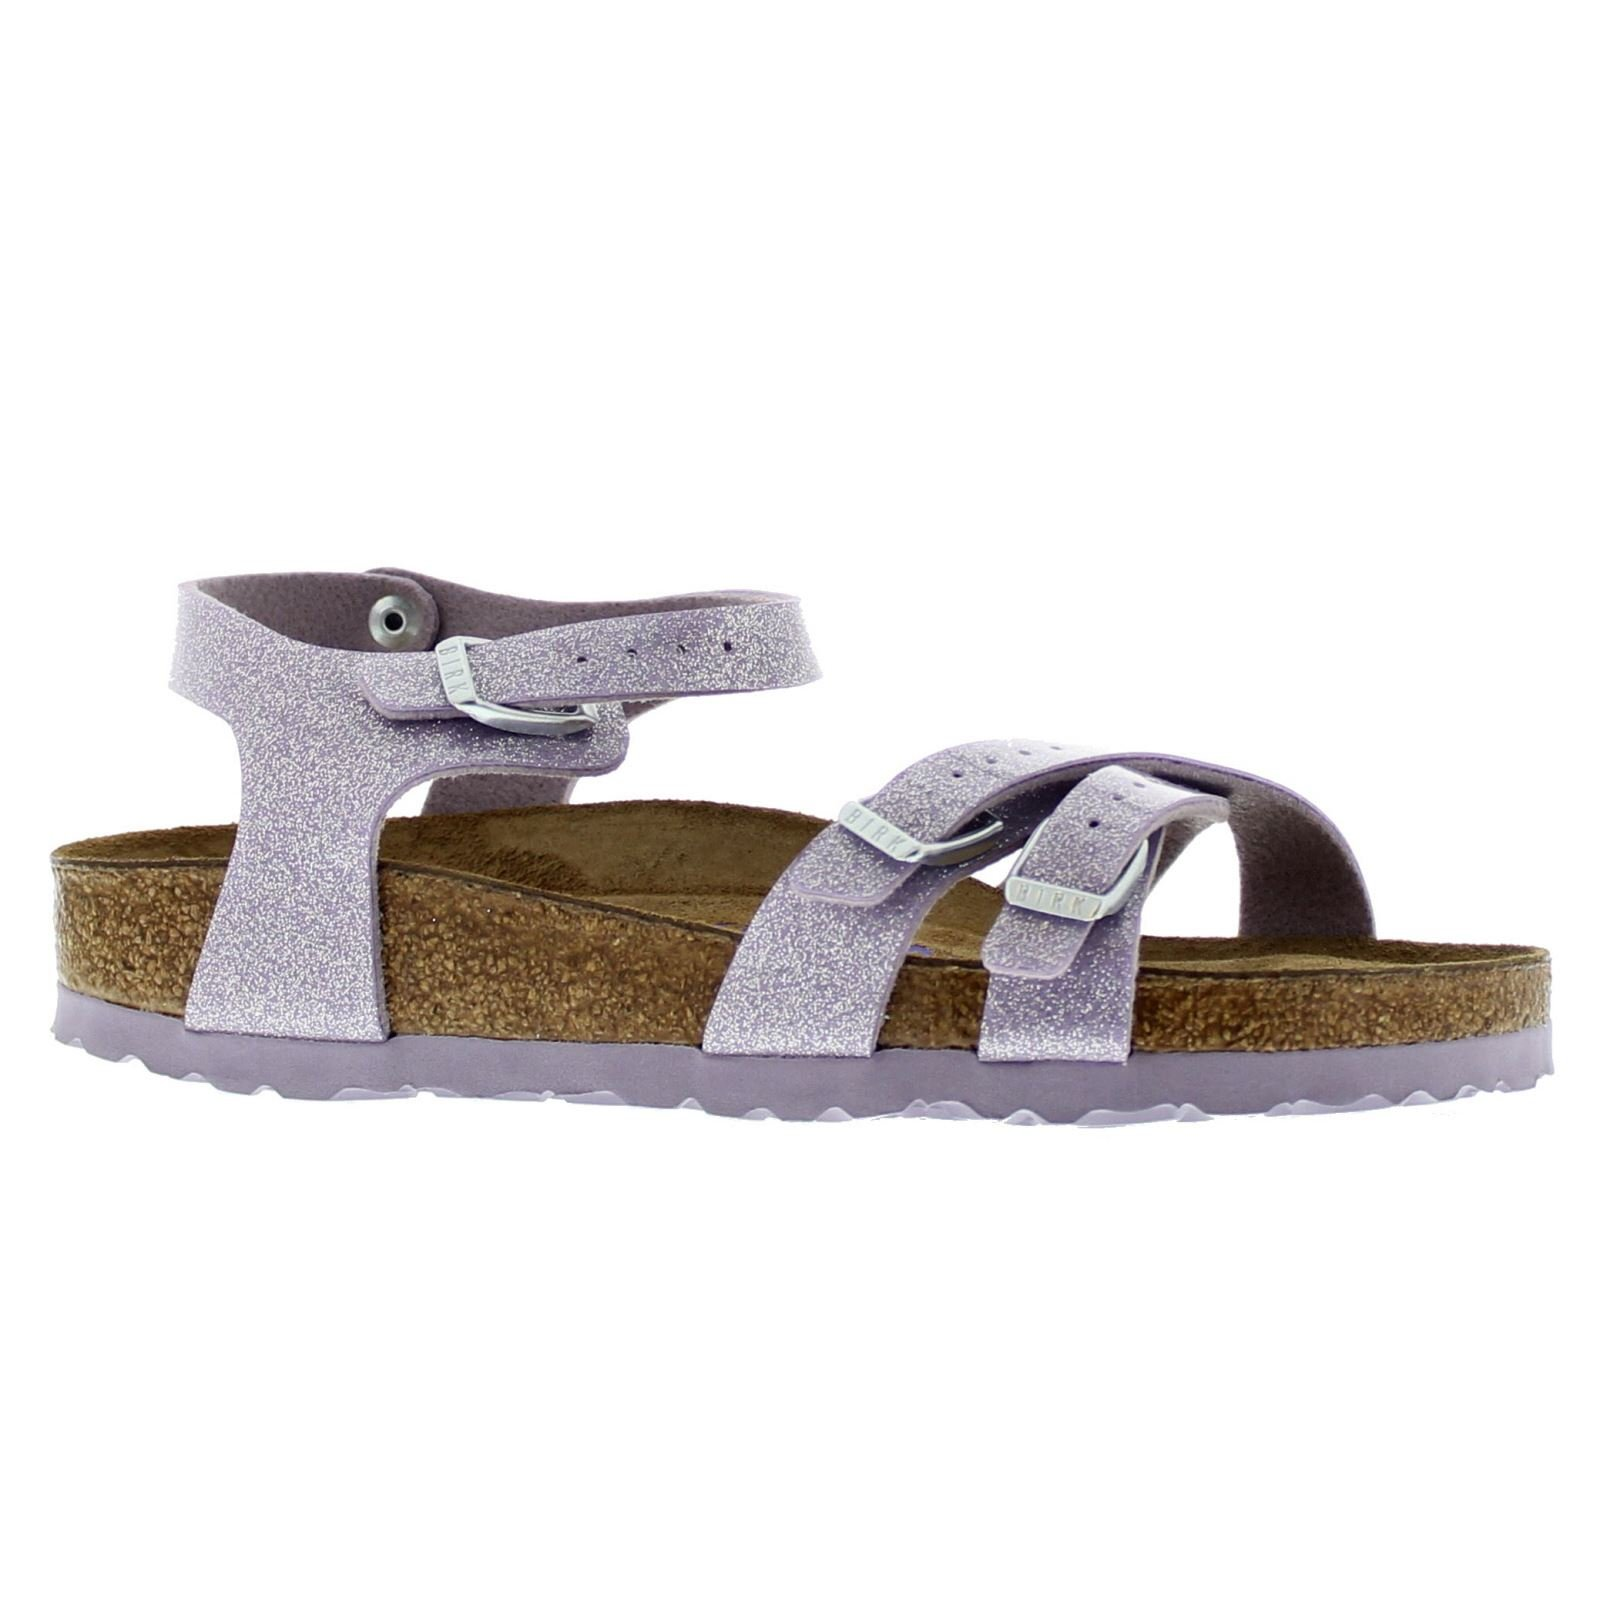 Birkenstock Womens Kumba Magic Galaxy Lavender Birko-Flor Sandals 41 EU